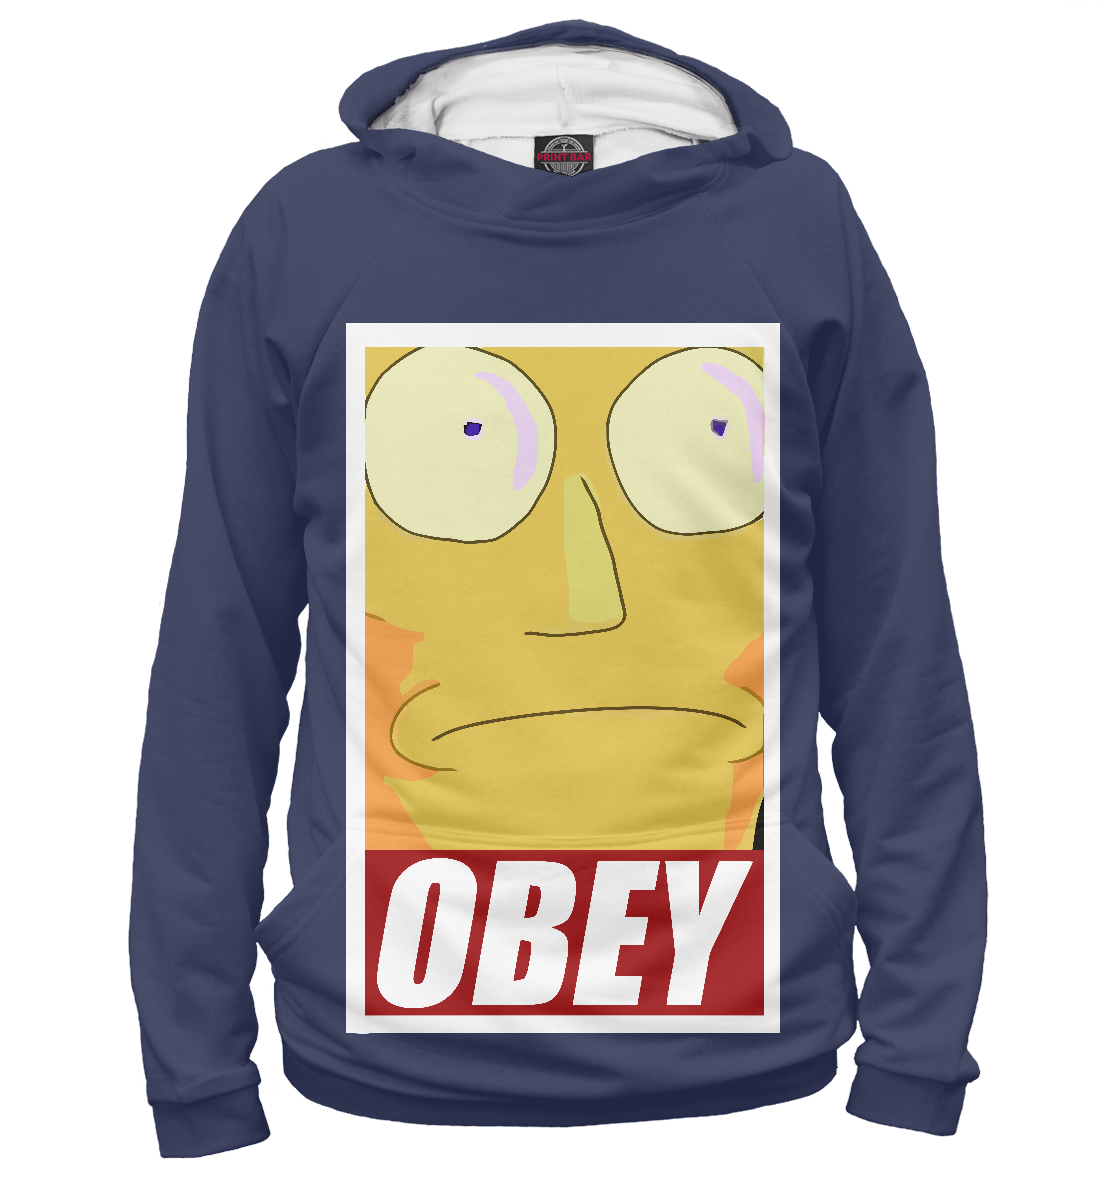 Купить OBEY - Rick and Morty, Printbar, Худи, RNM-420541-hud-2